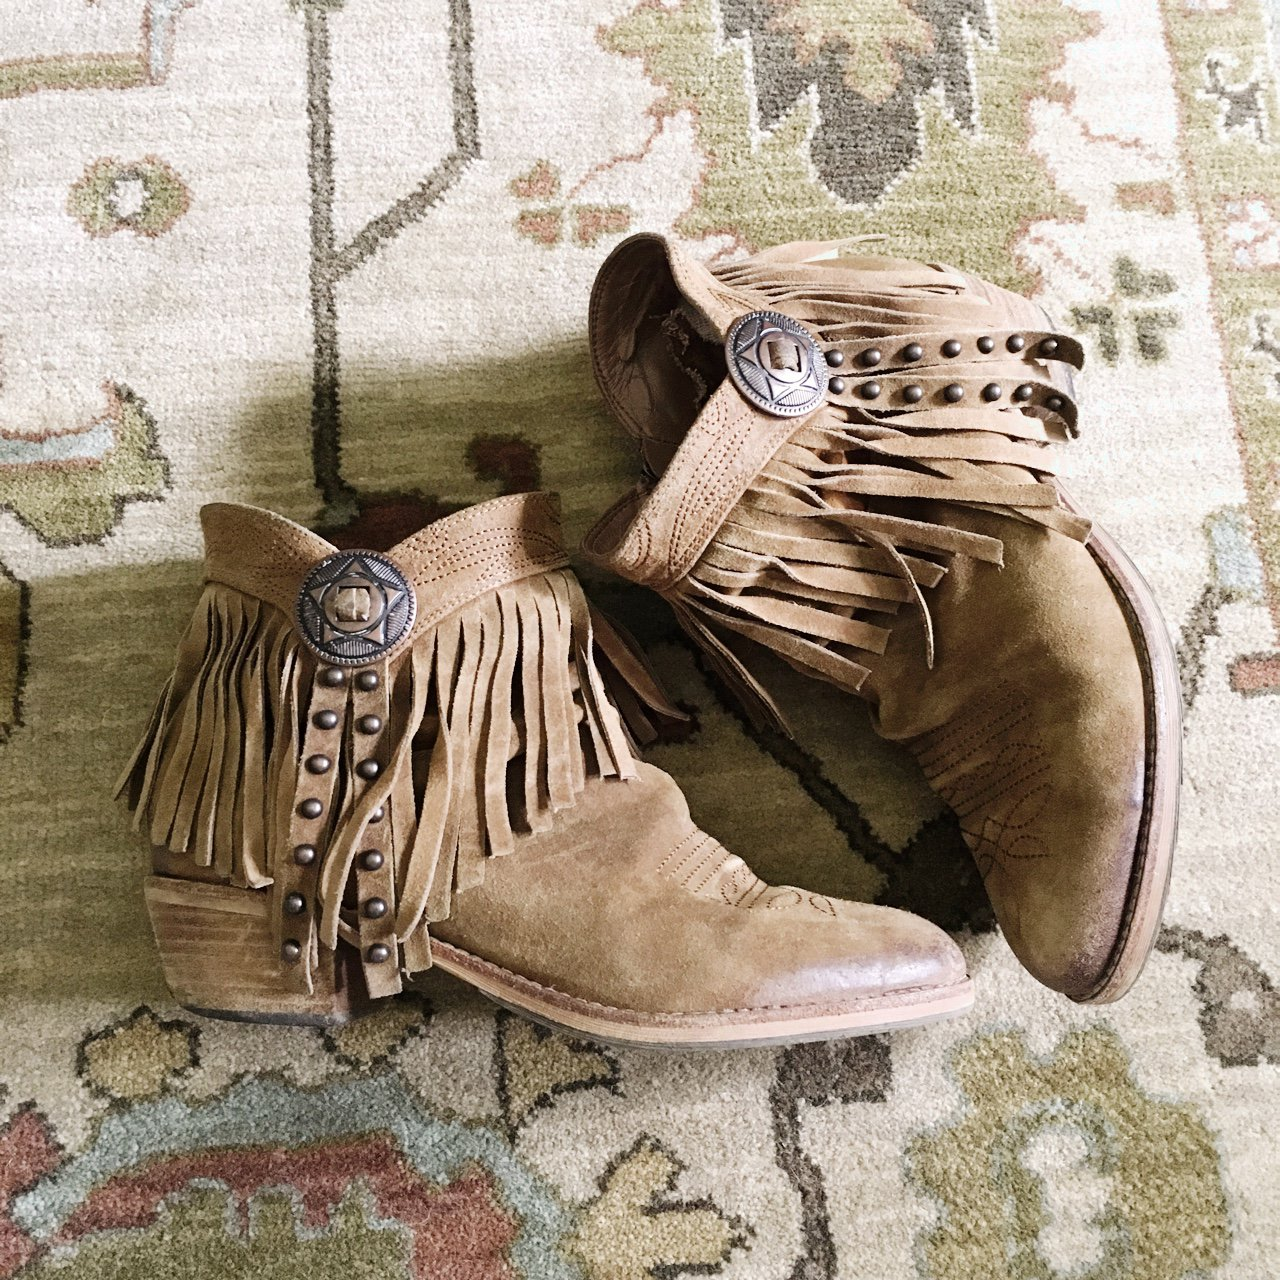 562b7b641 Sam Edelman fringe suede boots. Real suede. Heels are beat a - Depop